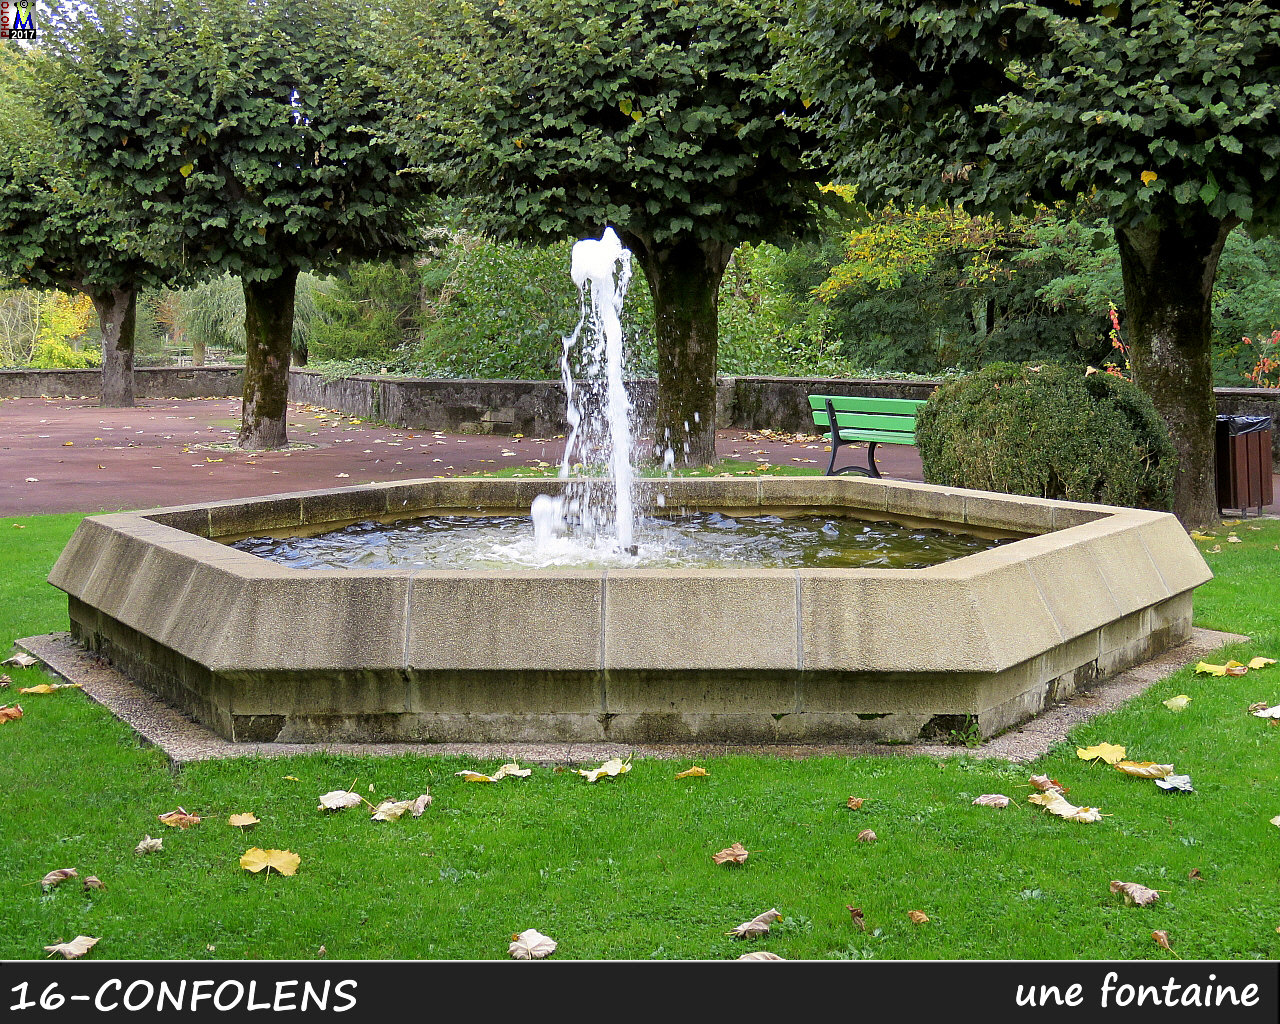 16CONFOLENS_fontaine_1020.jpg